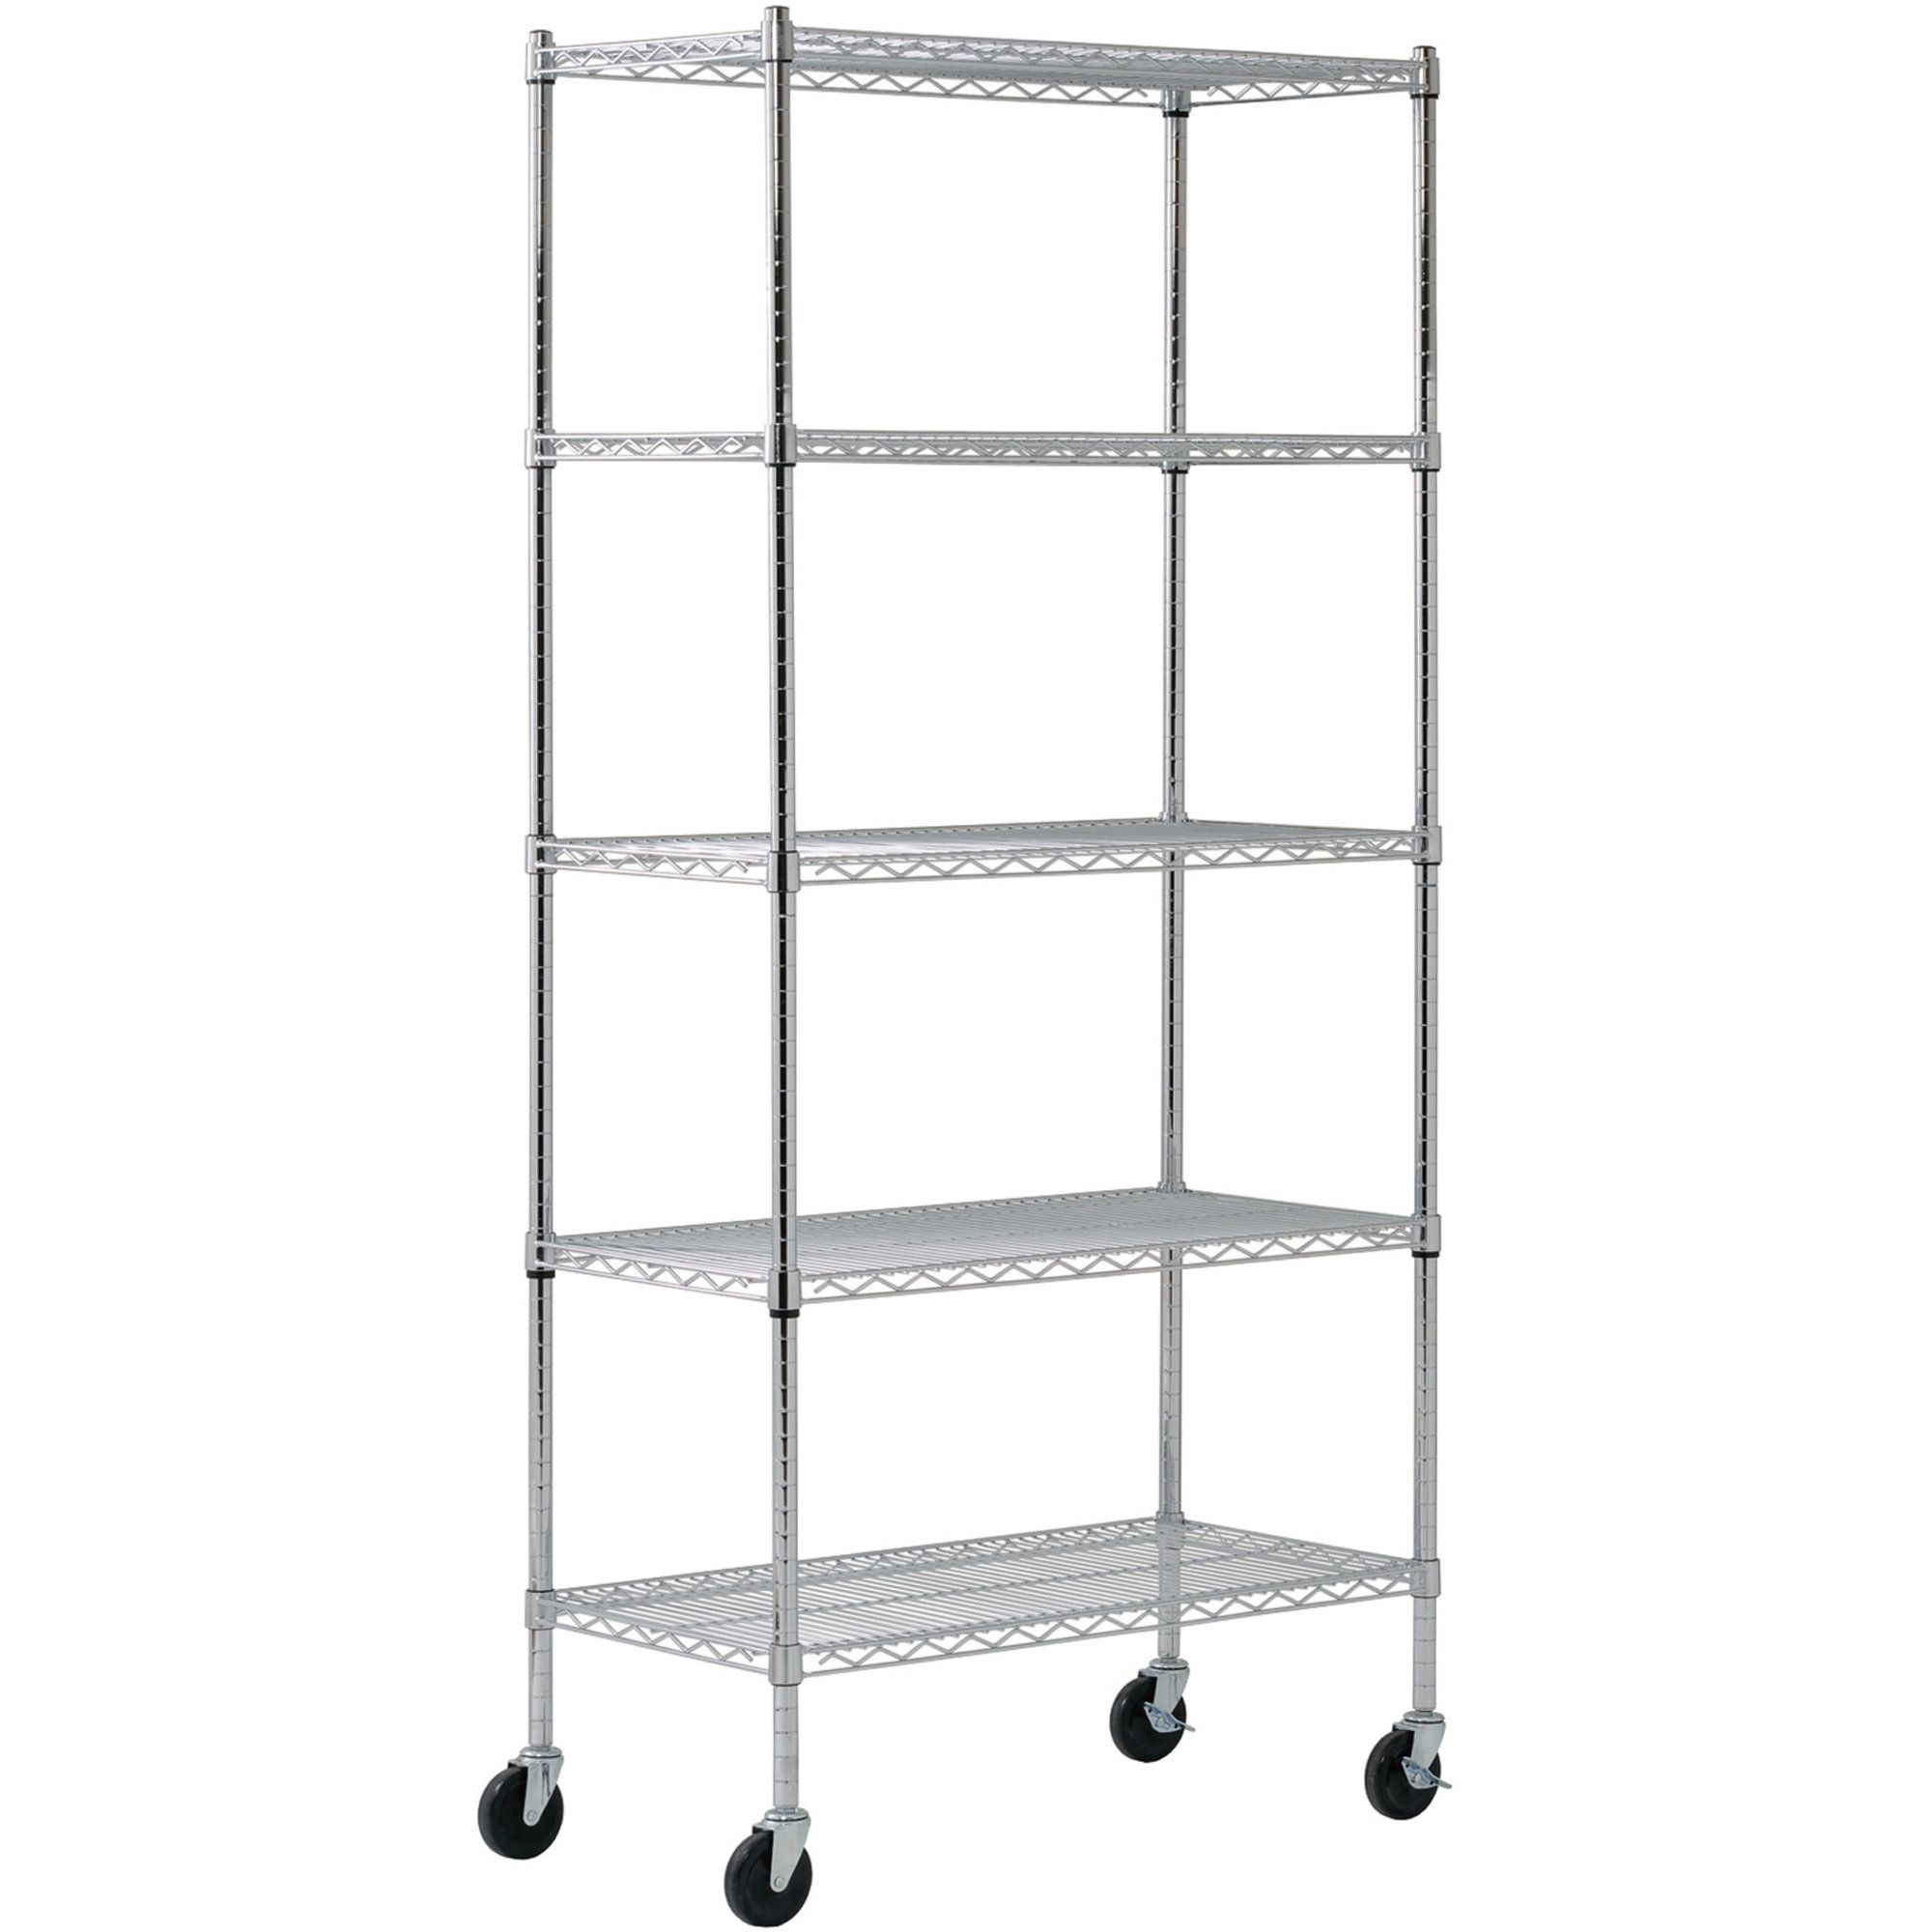 Wire Shelving Units Shelving Unit Wire Shelving Units Mobile Shelving